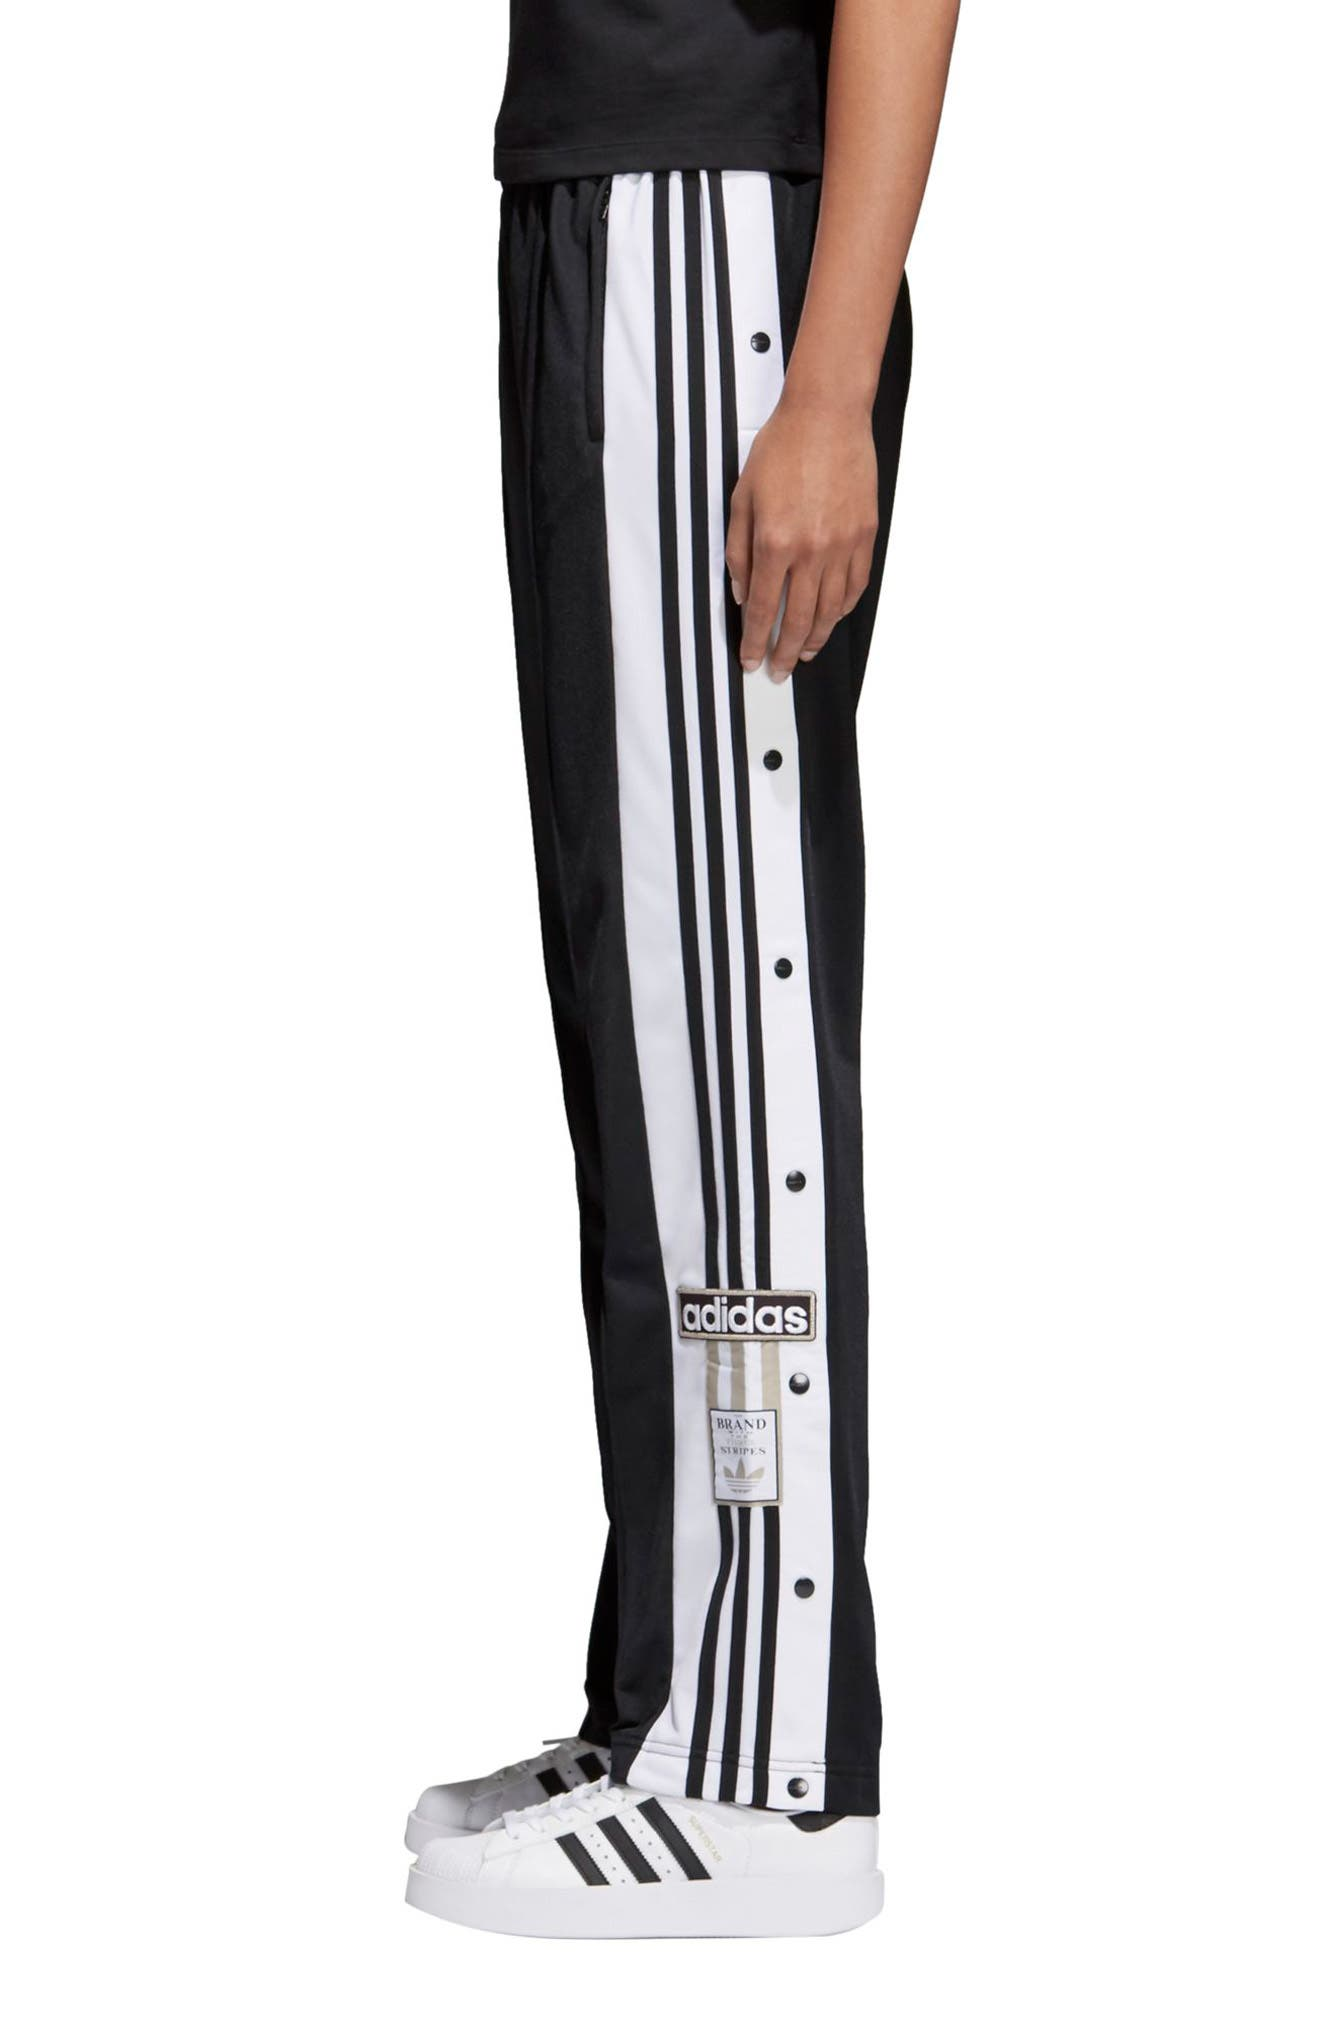 Originals Adibreak Tearaway Track Pants,                             Alternate thumbnail 3, color,                             Black/ Carbon